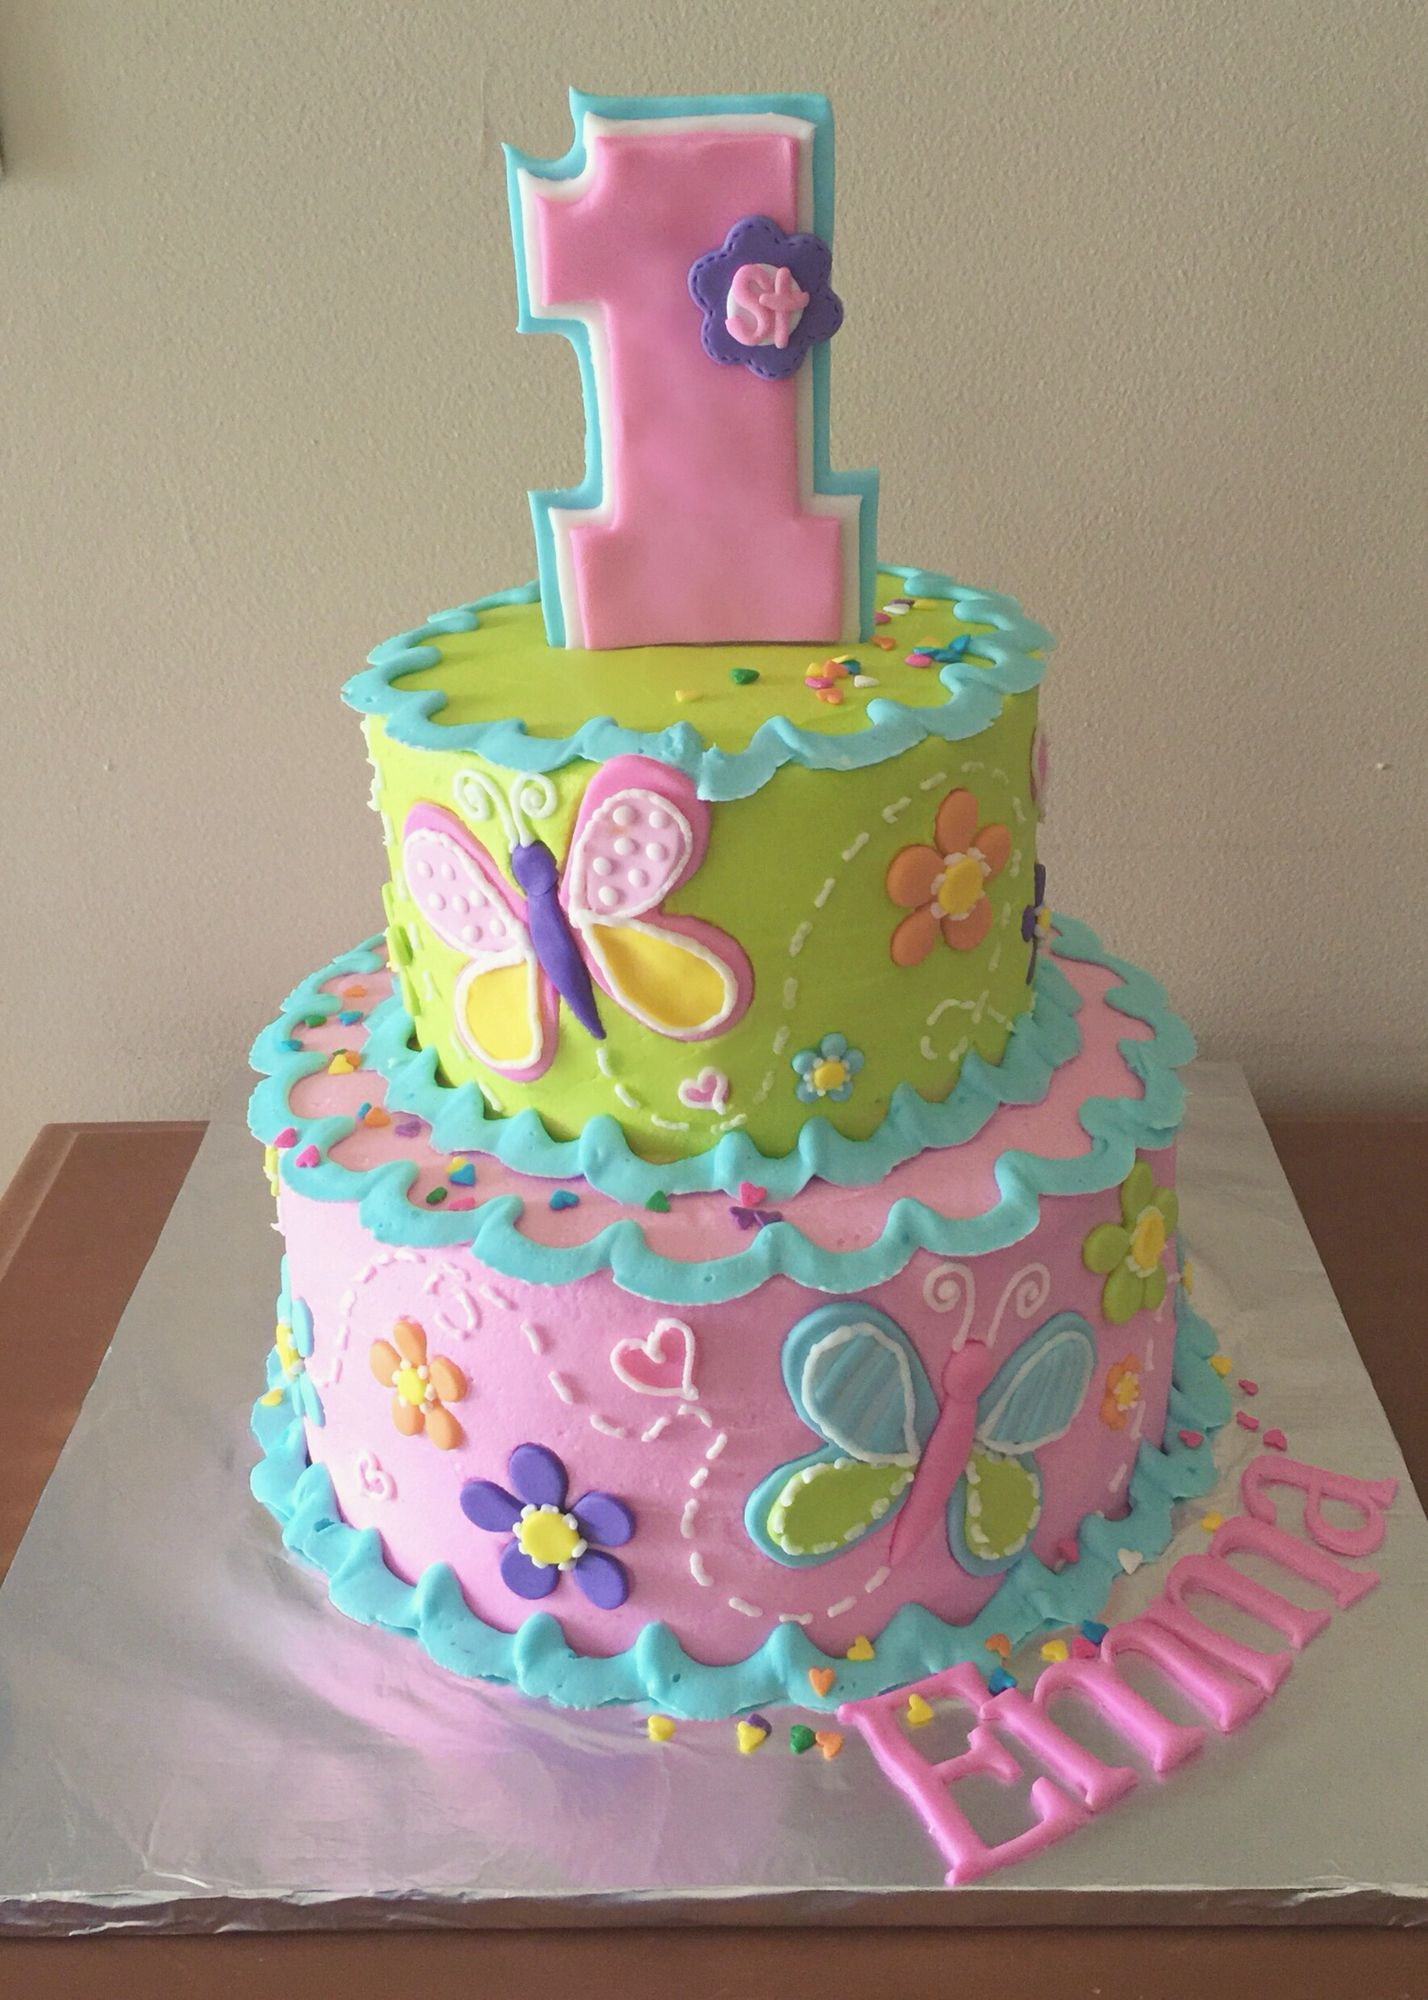 Best ideas about Birthday Cake For Girls . Save or Pin 1st birthday cake for a girl My Own Cakes Now.